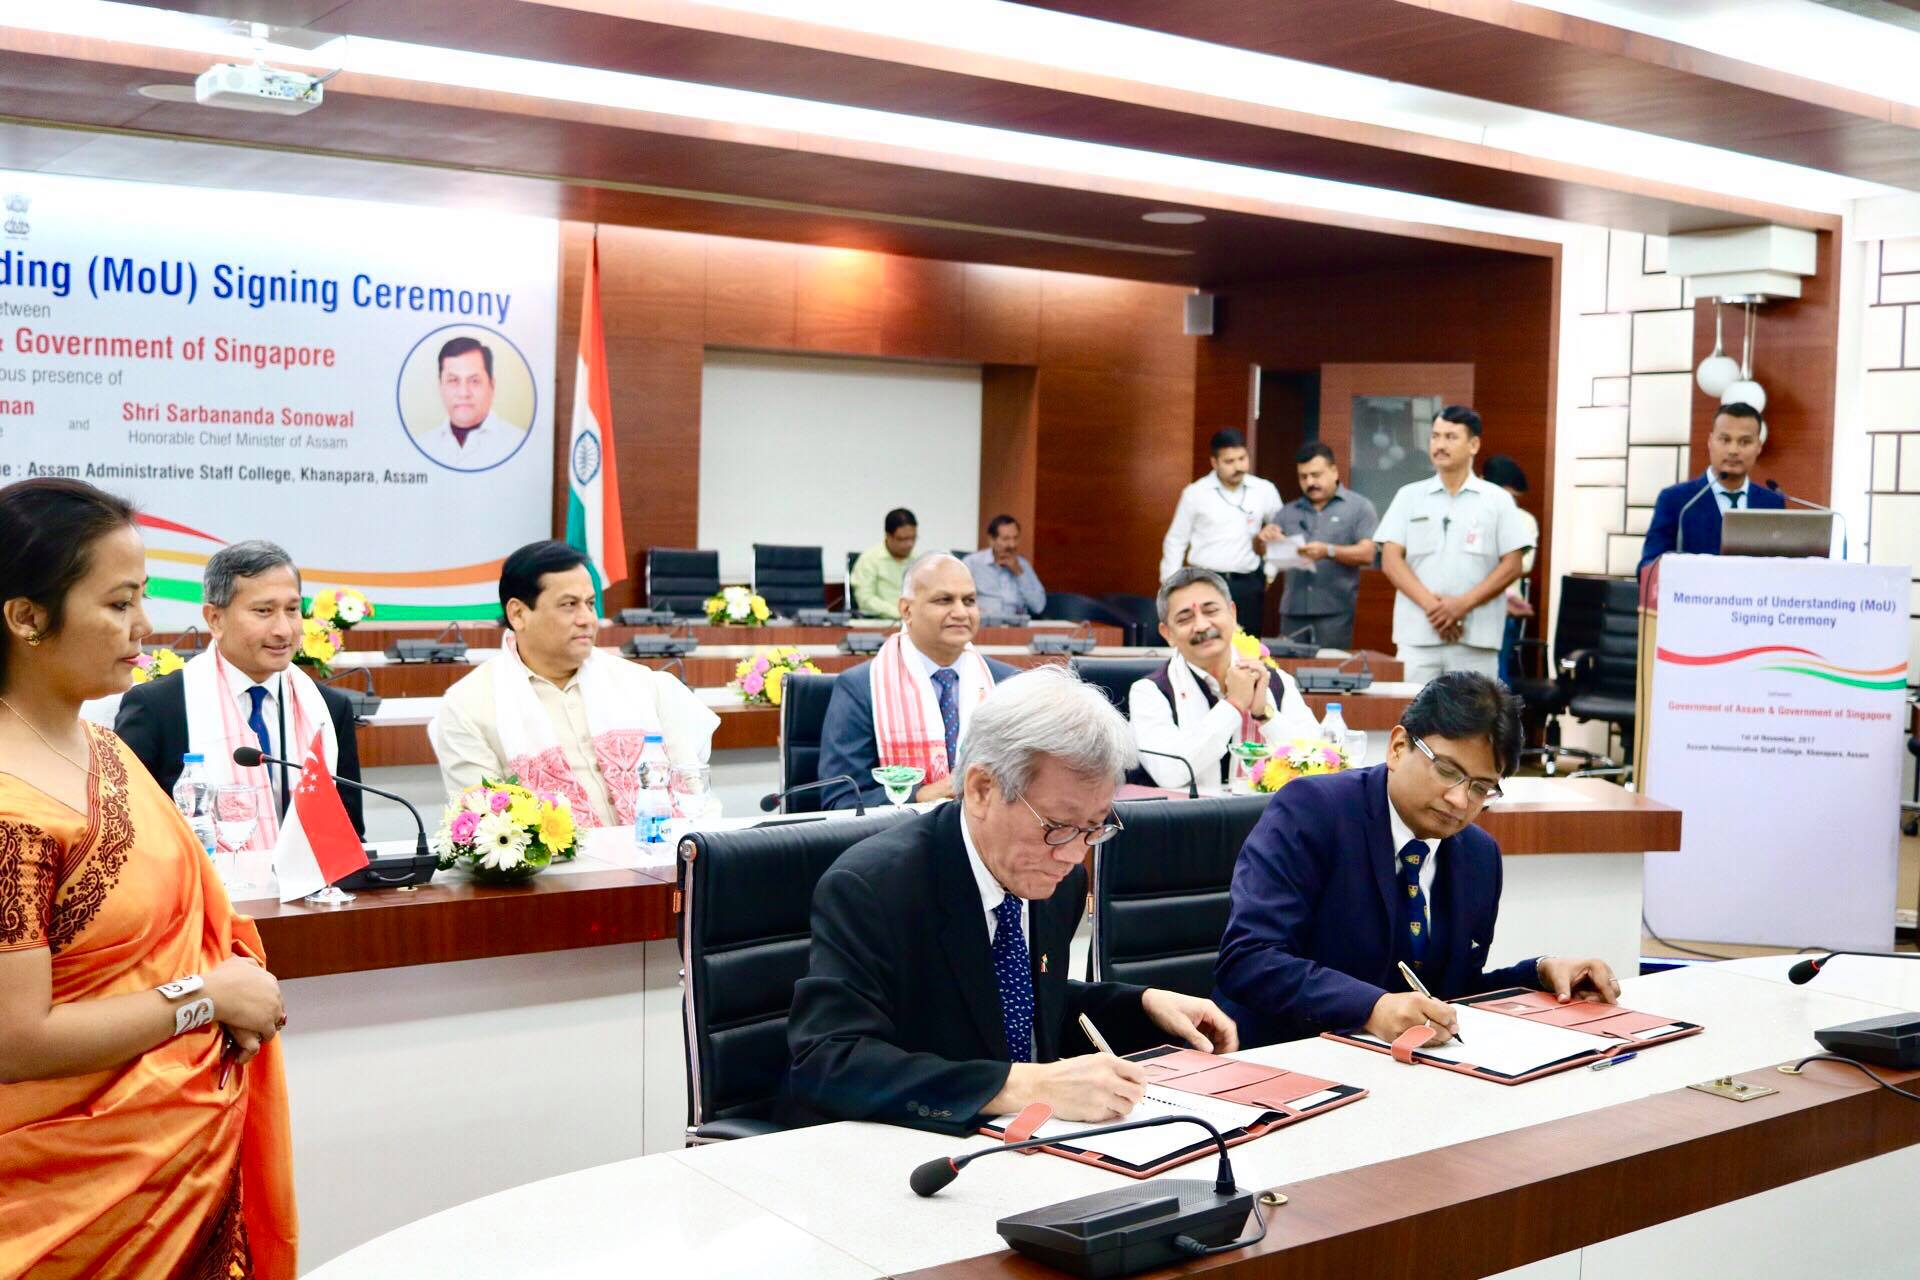 Singapore Minister for Foreign Affairs Dr Vivian Balakrishnan looks on the signing of MoU on North East Skills Centre by Singapore High Commissioner Lim Thuan Kuan and Assam Principal Secretary of Skills Ashutosh Agnihotri.